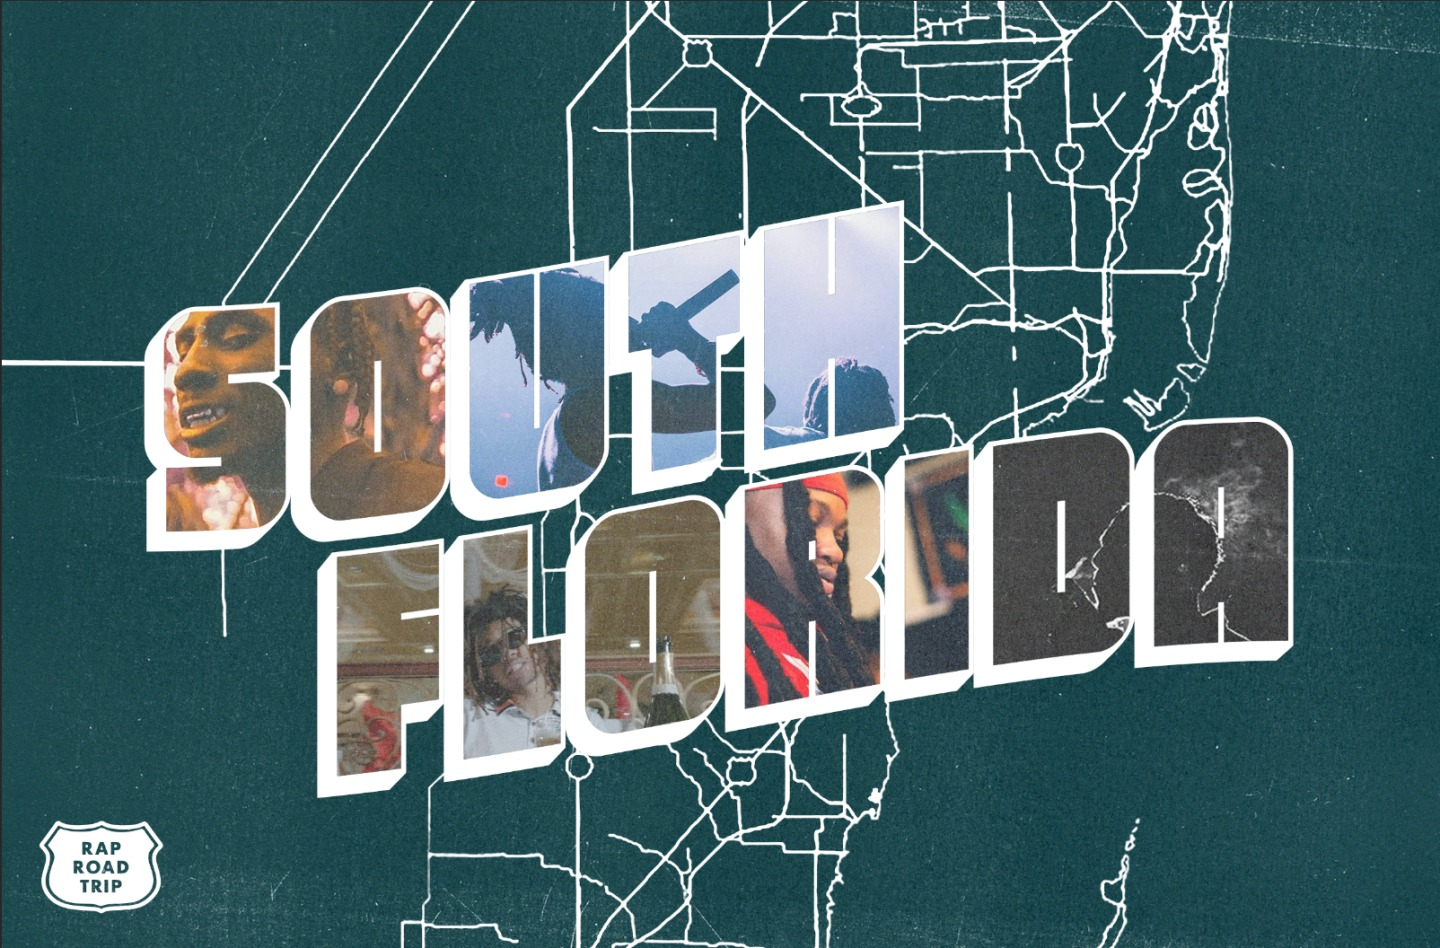 5 under-the-radar rappers from South Florida you should know about